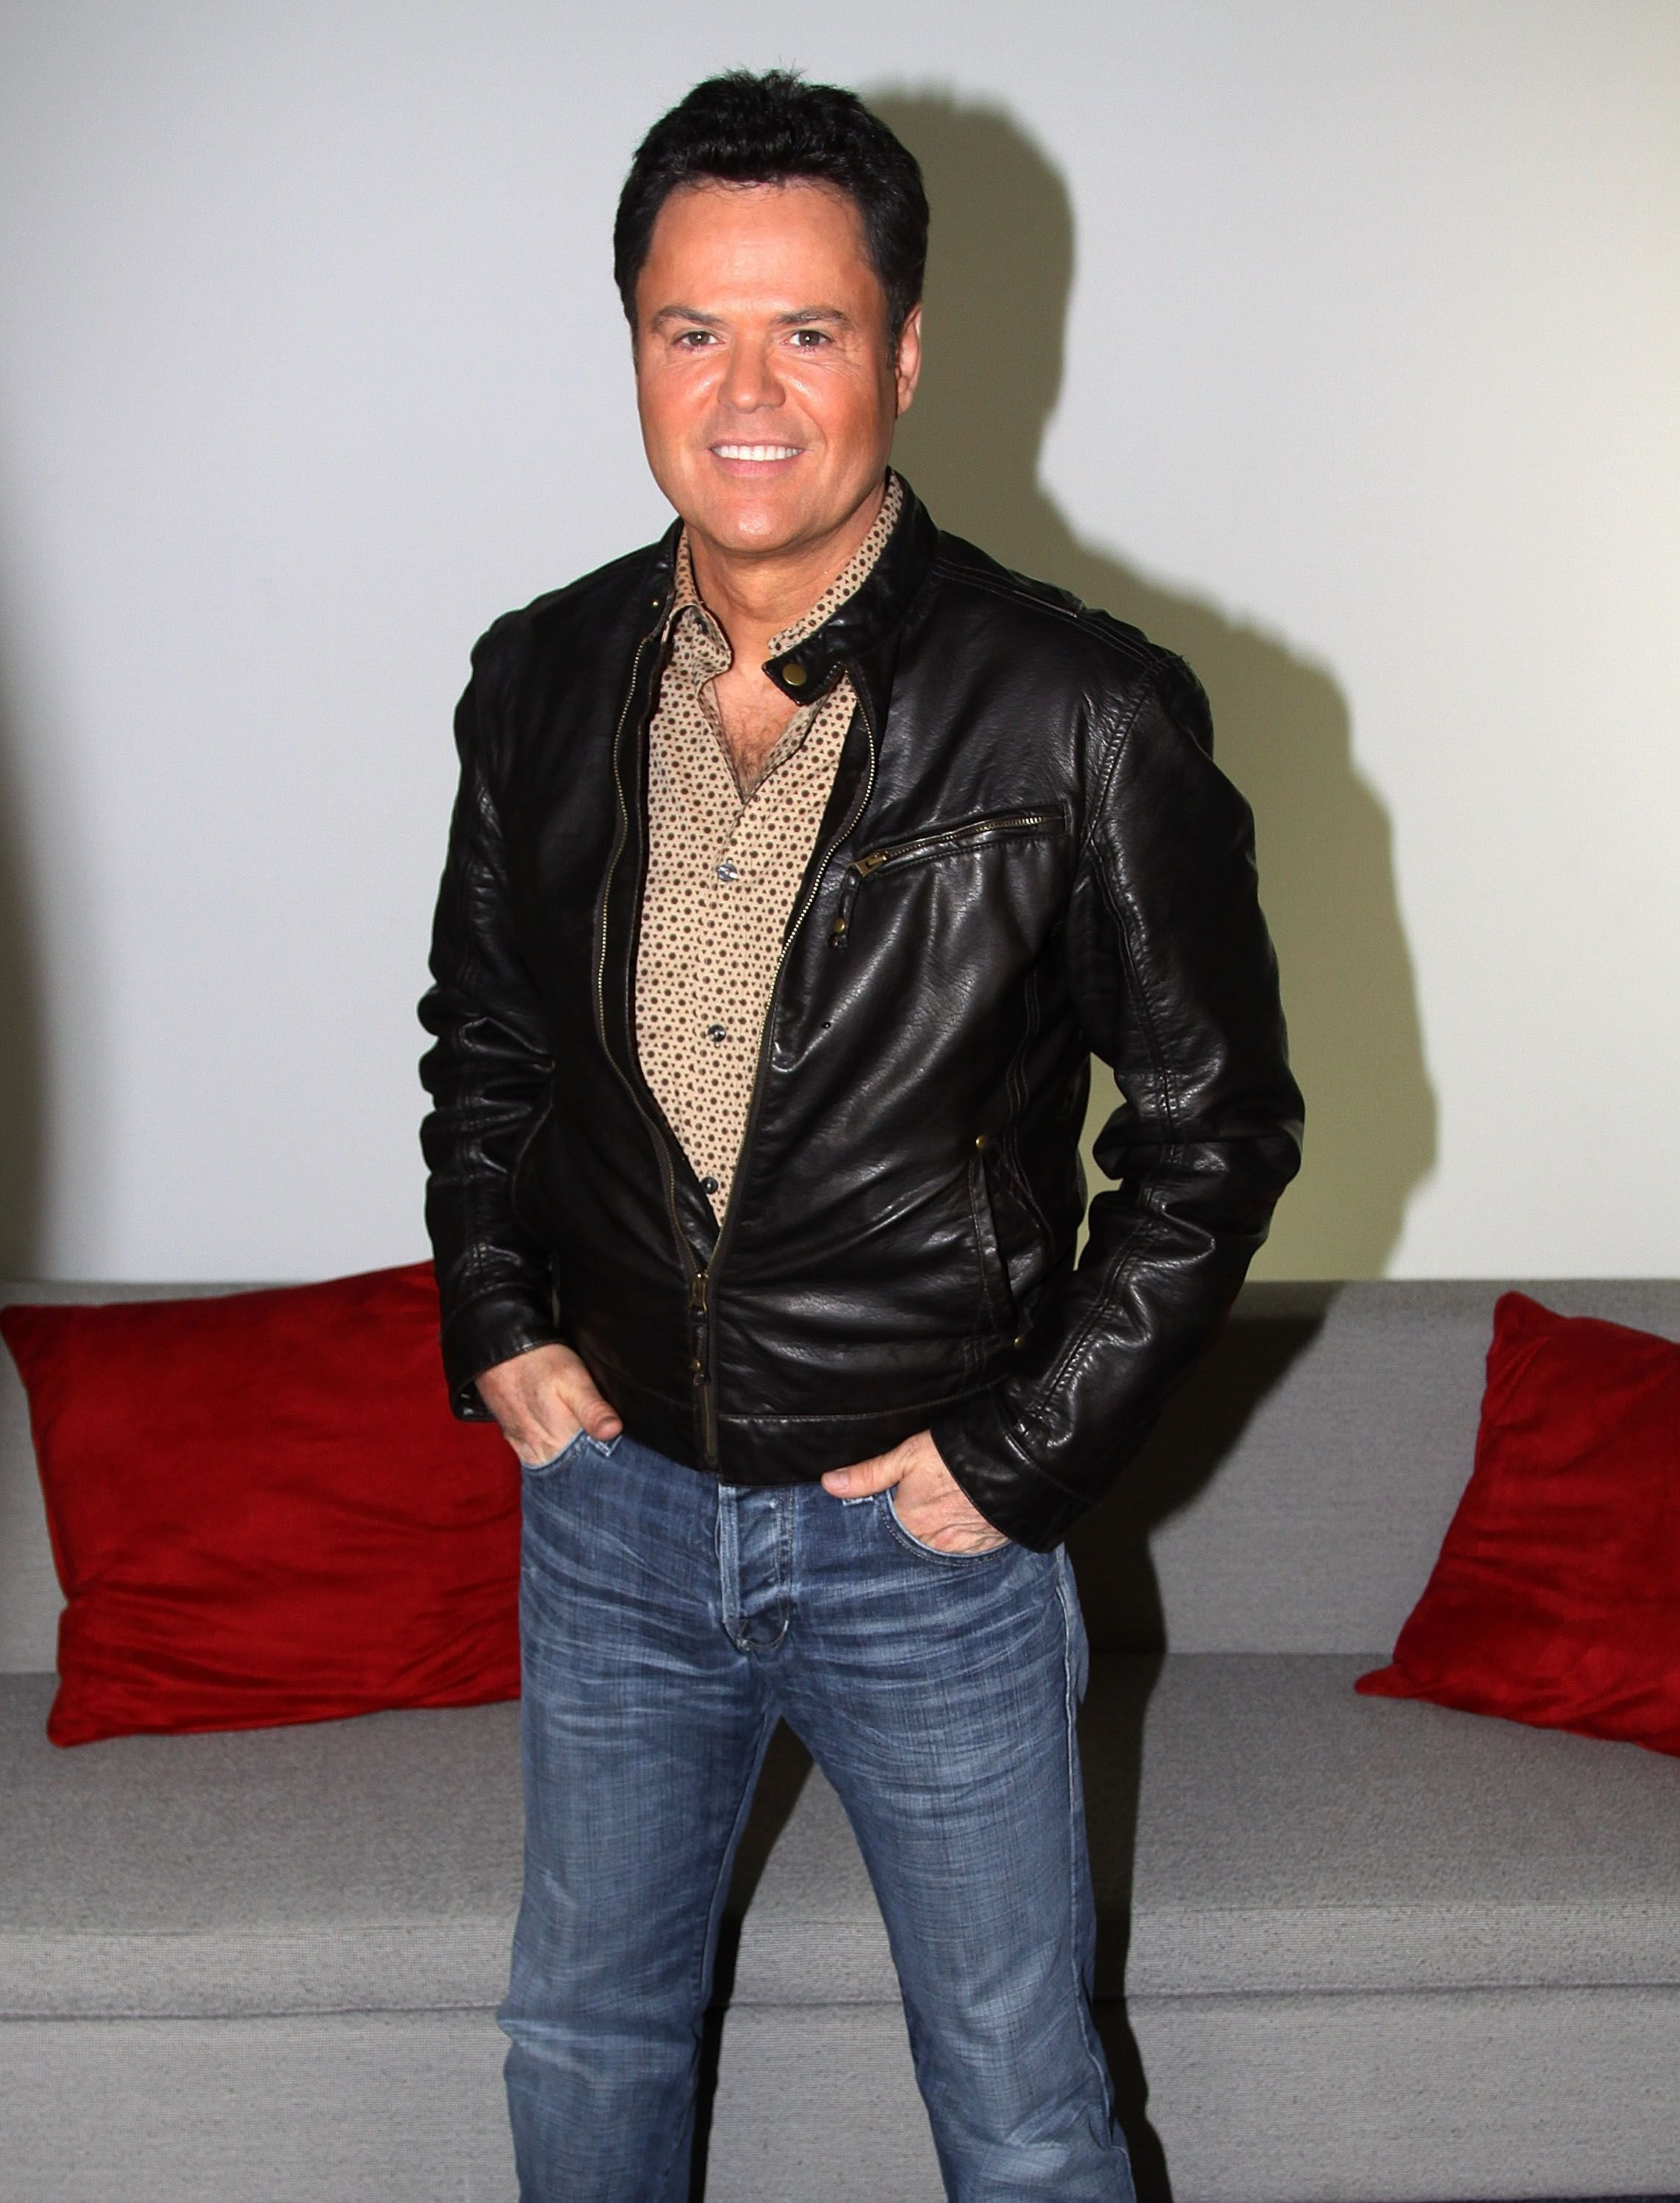 """Donny Osmond promotes """"A Broadway Christmas"""" while visiting The Broadway.com Studios on December 8, 2010, in New York City   Photo: Bruce Glikas/Getty Images"""